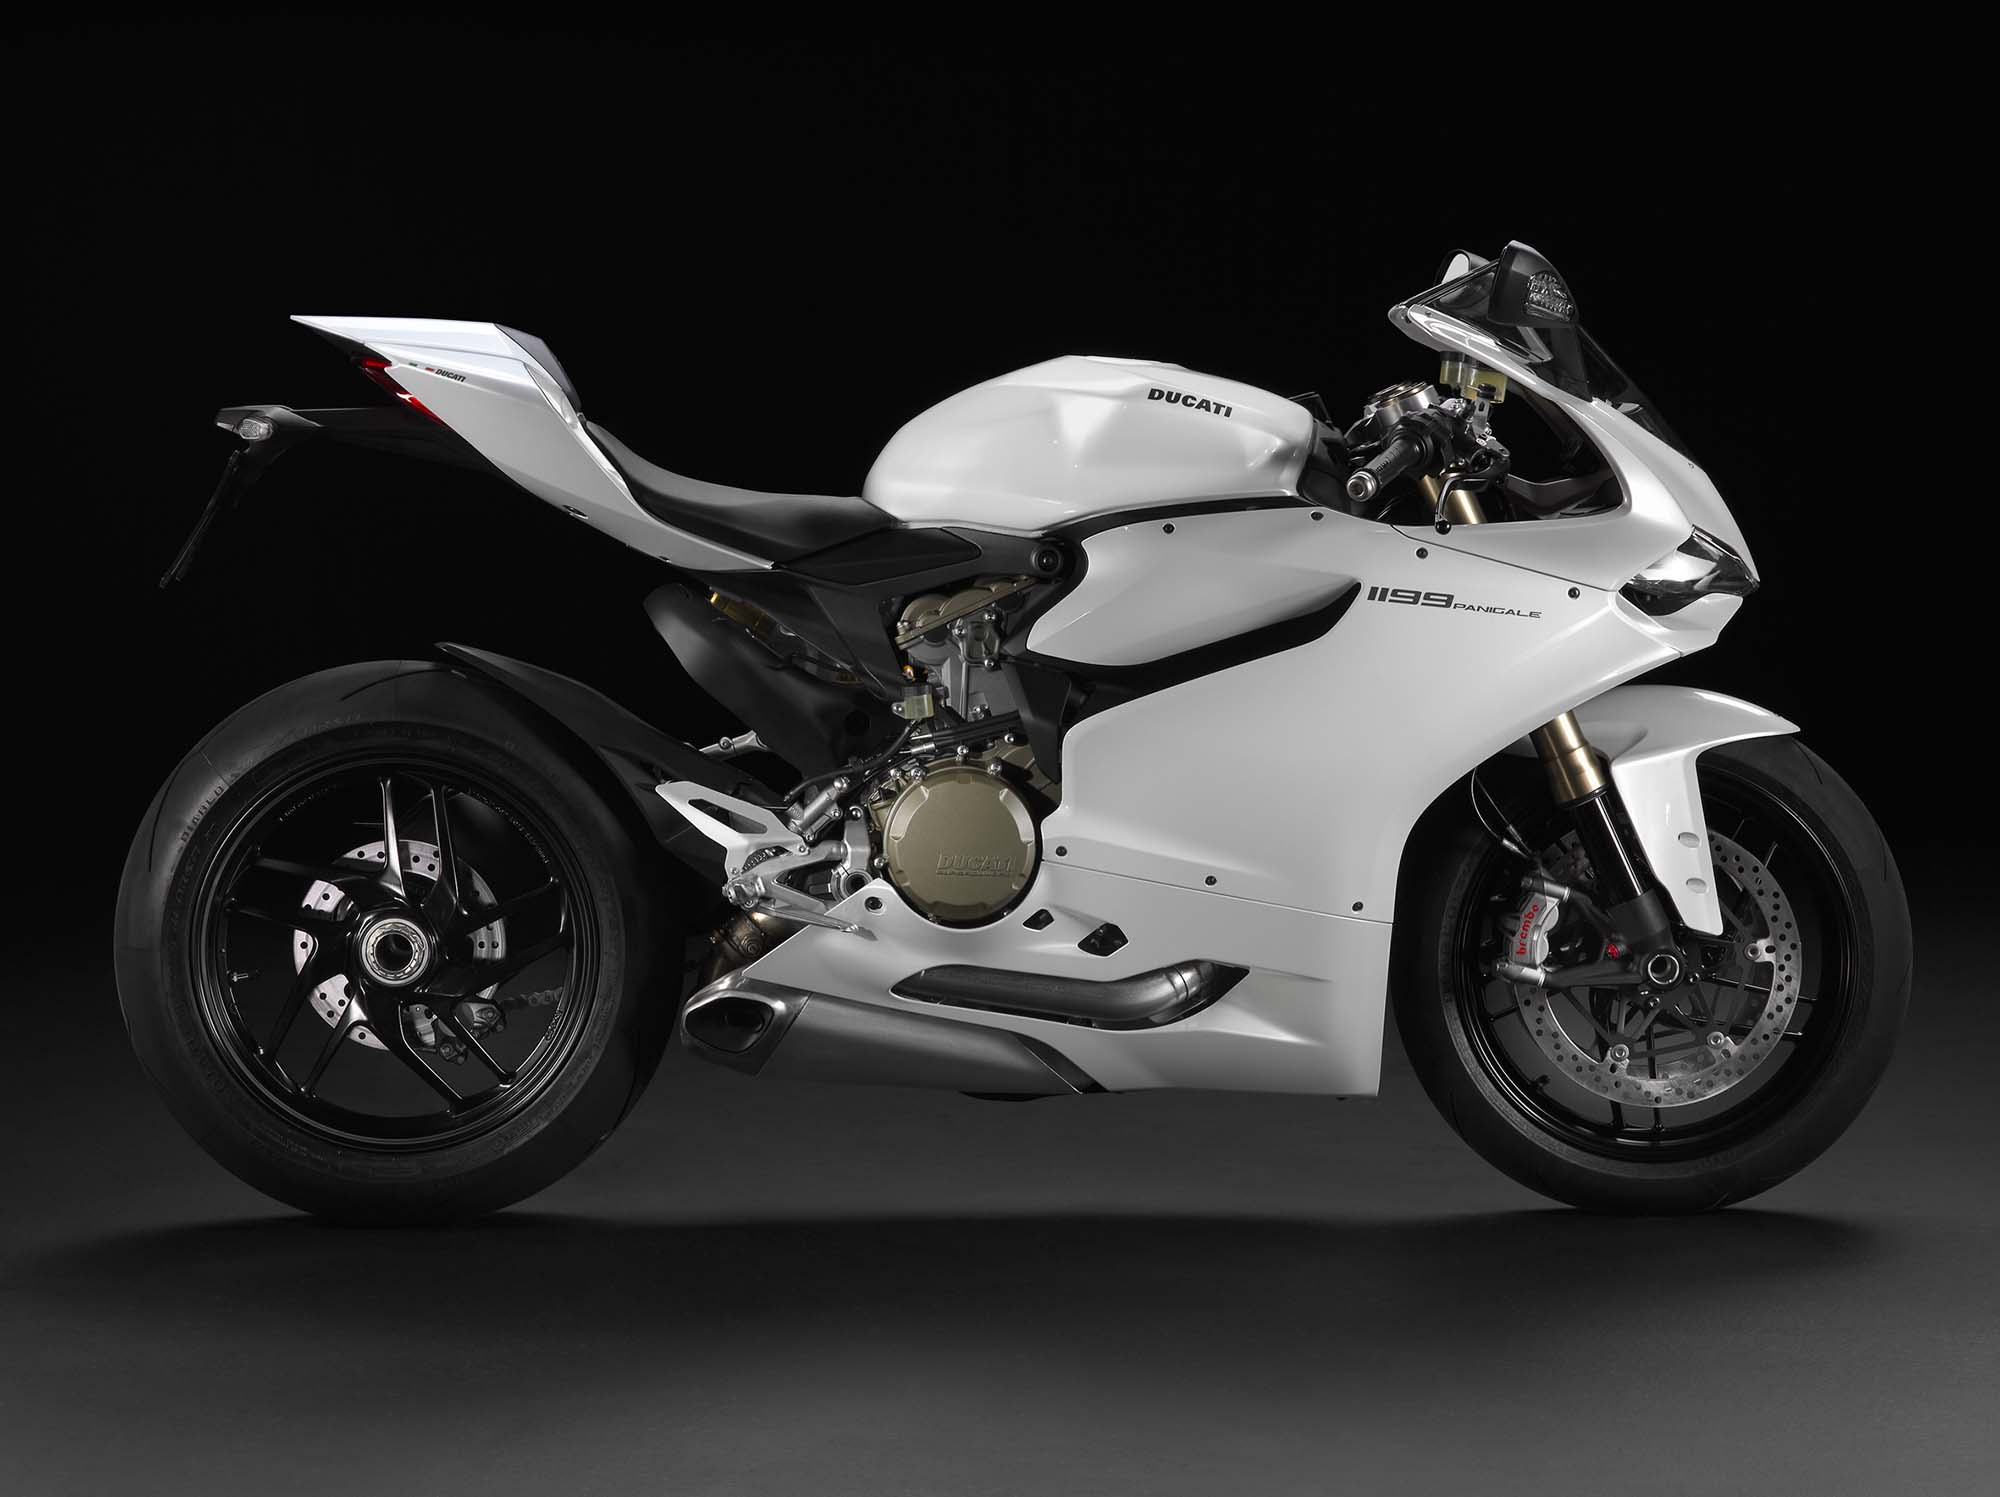 2013 Ducati 1199 Panigale - Now in Arctic White - Asphalt & Rubber